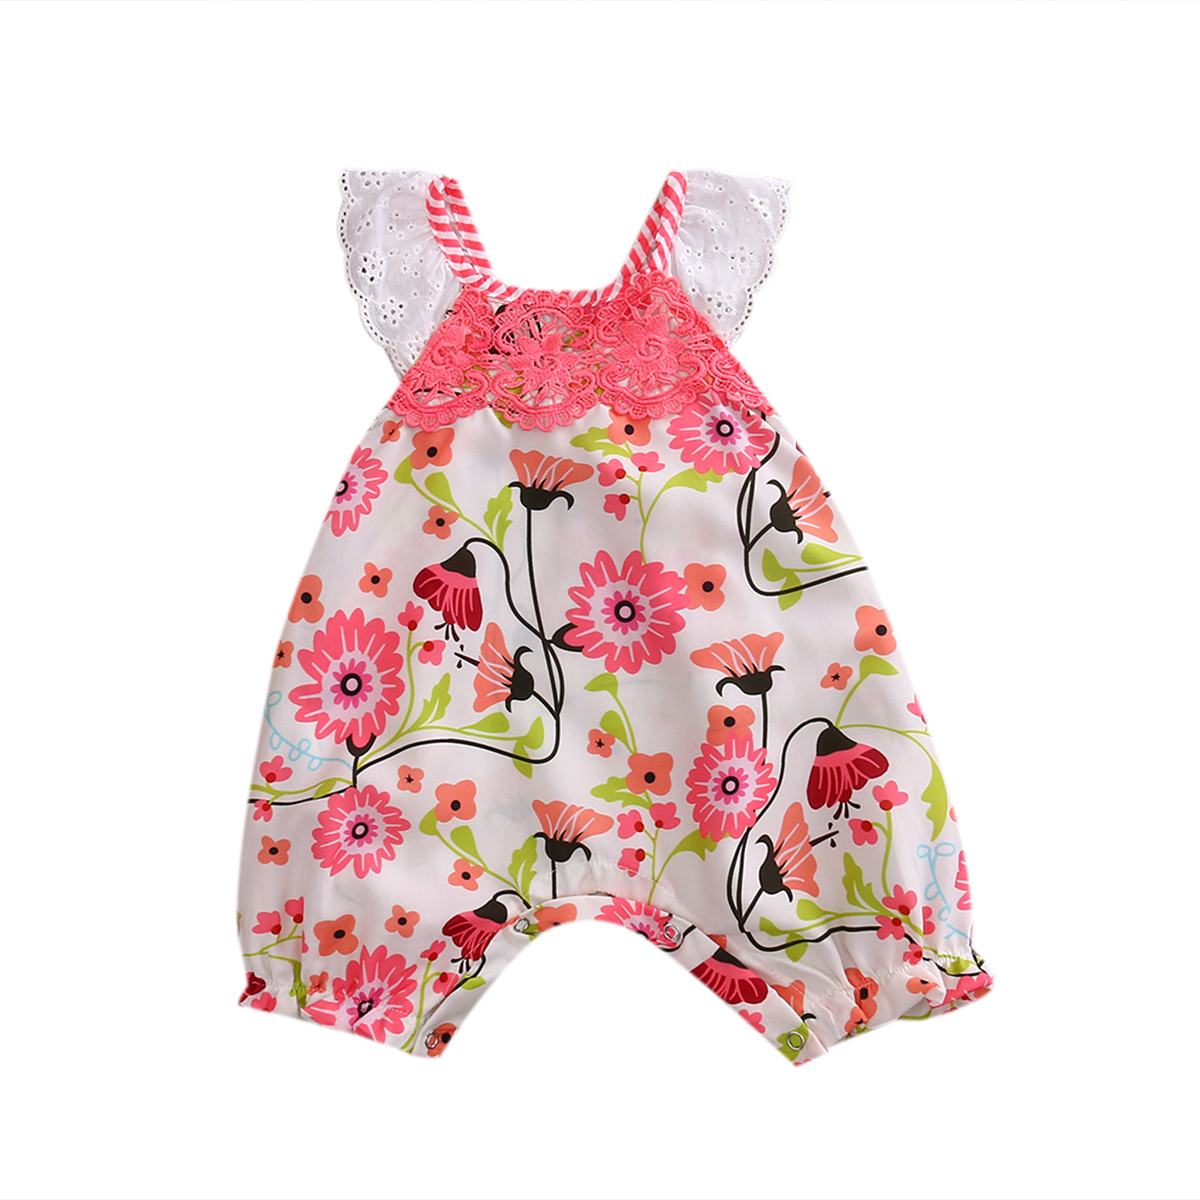 New Arrivals Infant Baby Girl Clothes Cute Lace Romper Outfit Toddler Girls Summer Floral Sunsuit 0-24M